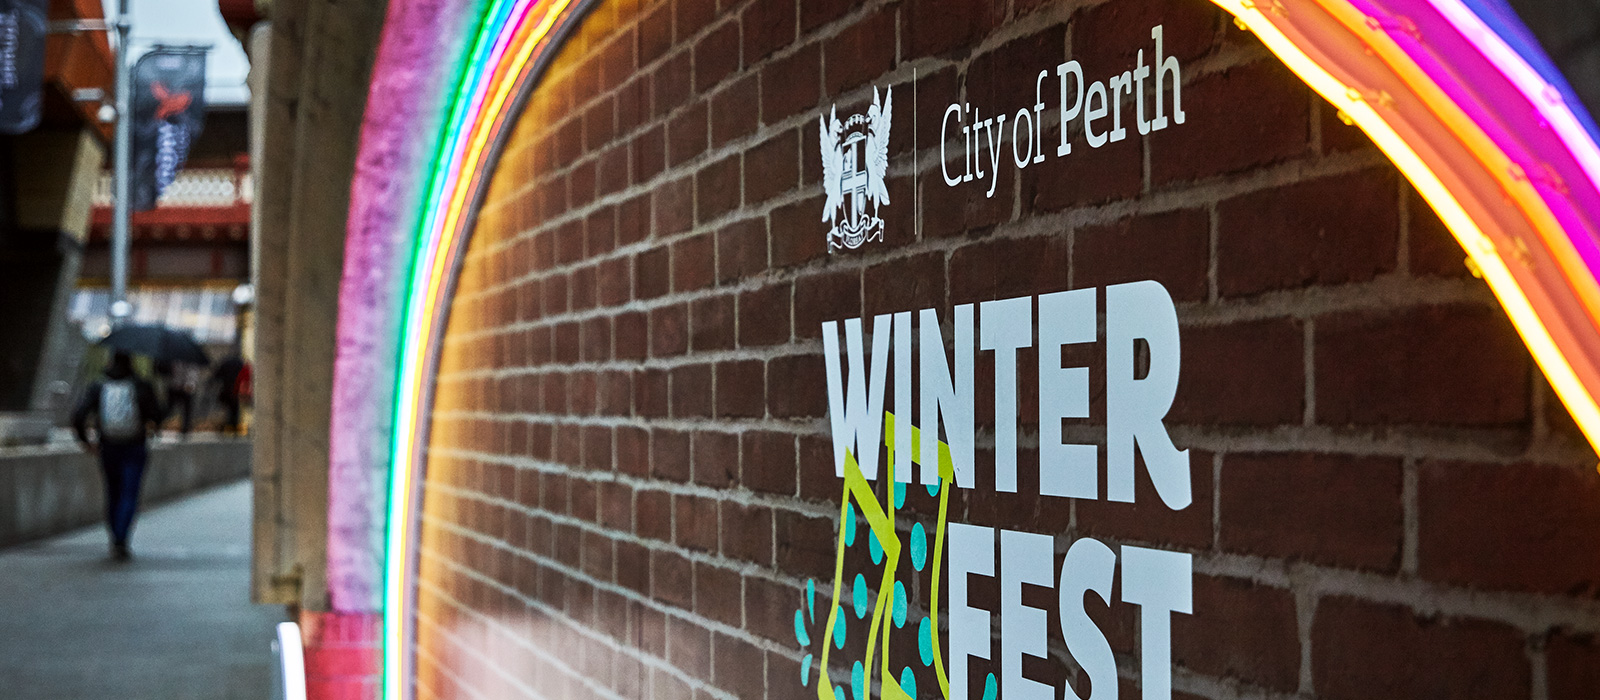 Winter Festival sponsored by the City of Perth